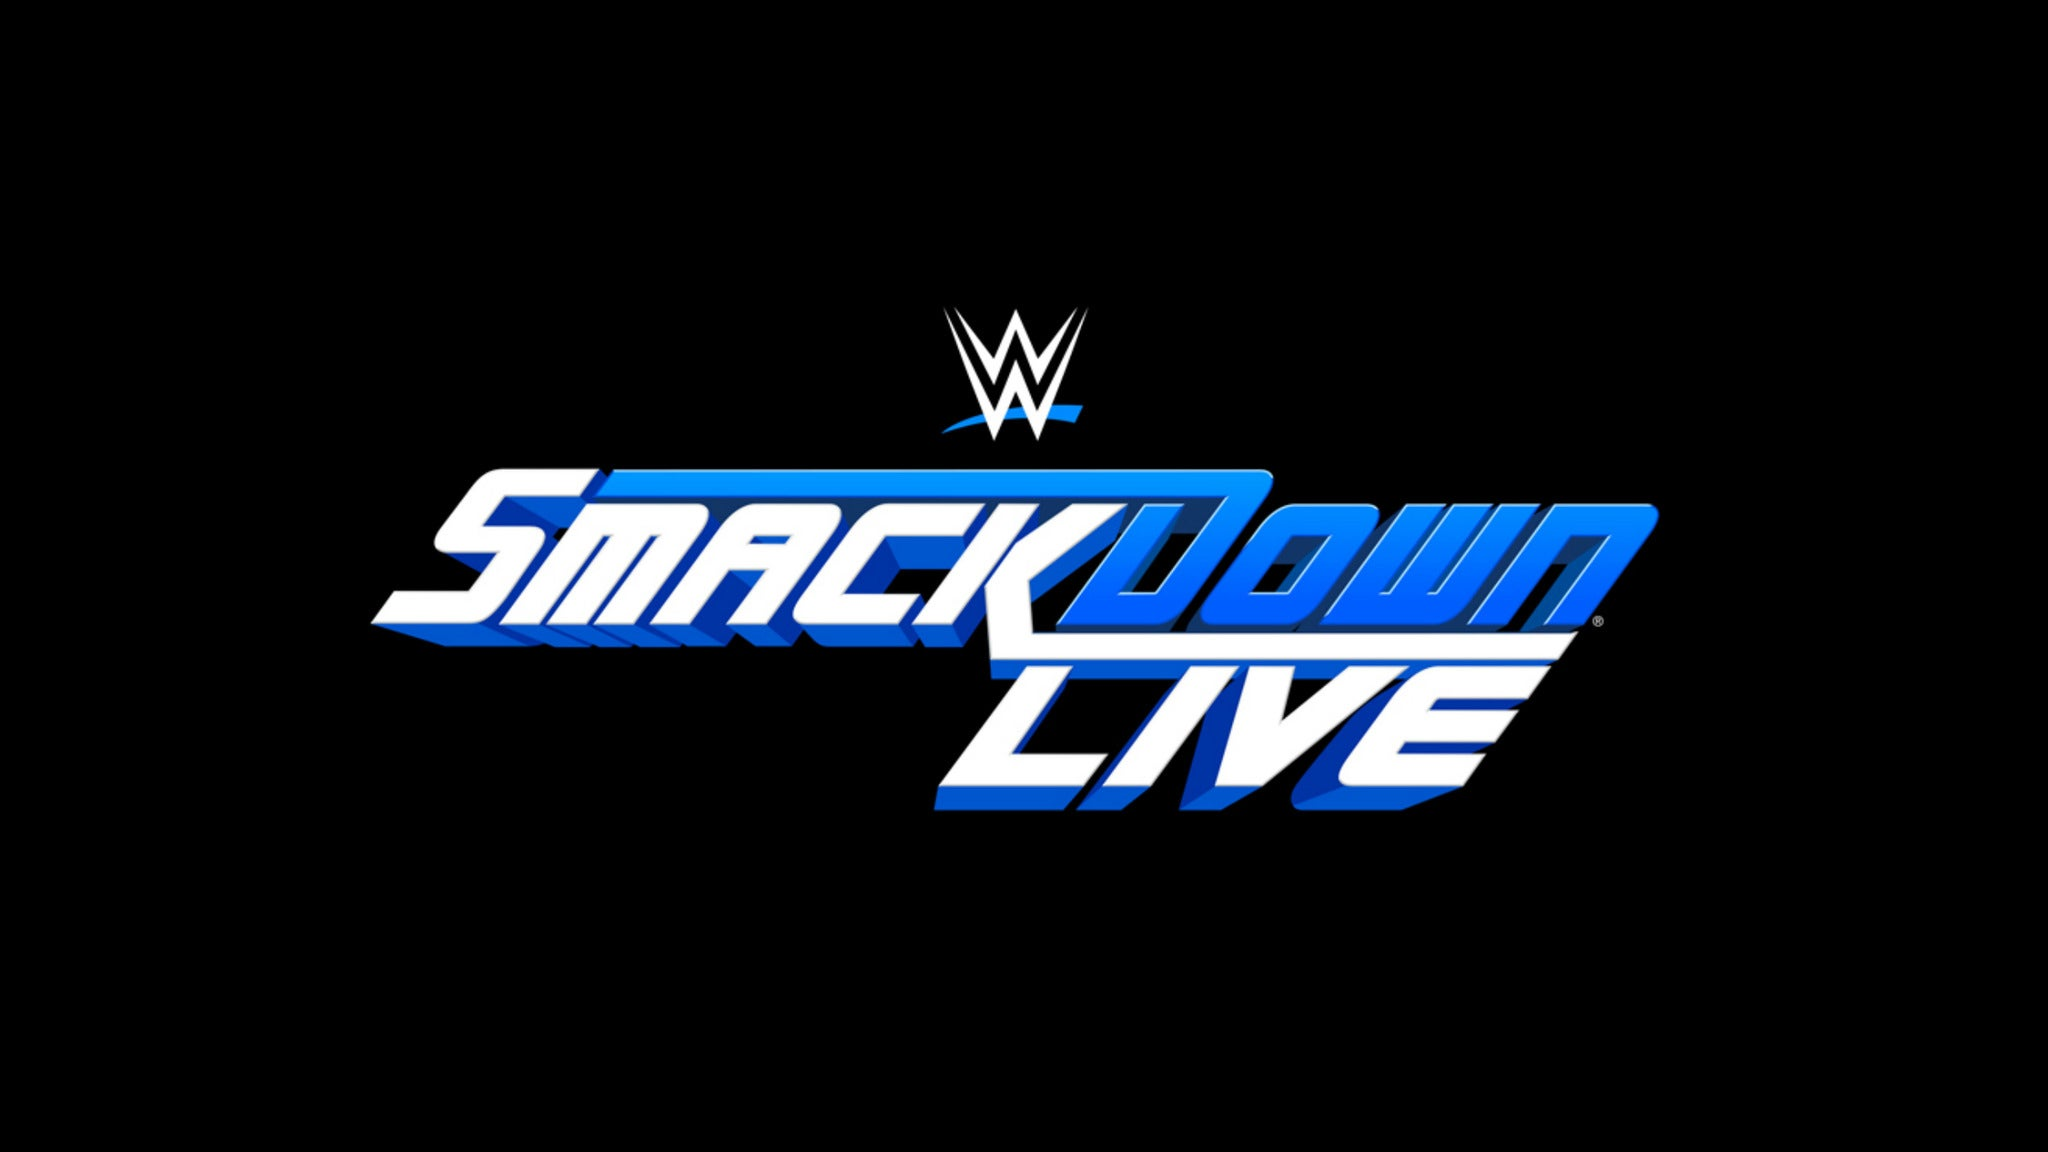 WWE presents SMACKDOWN LIVE